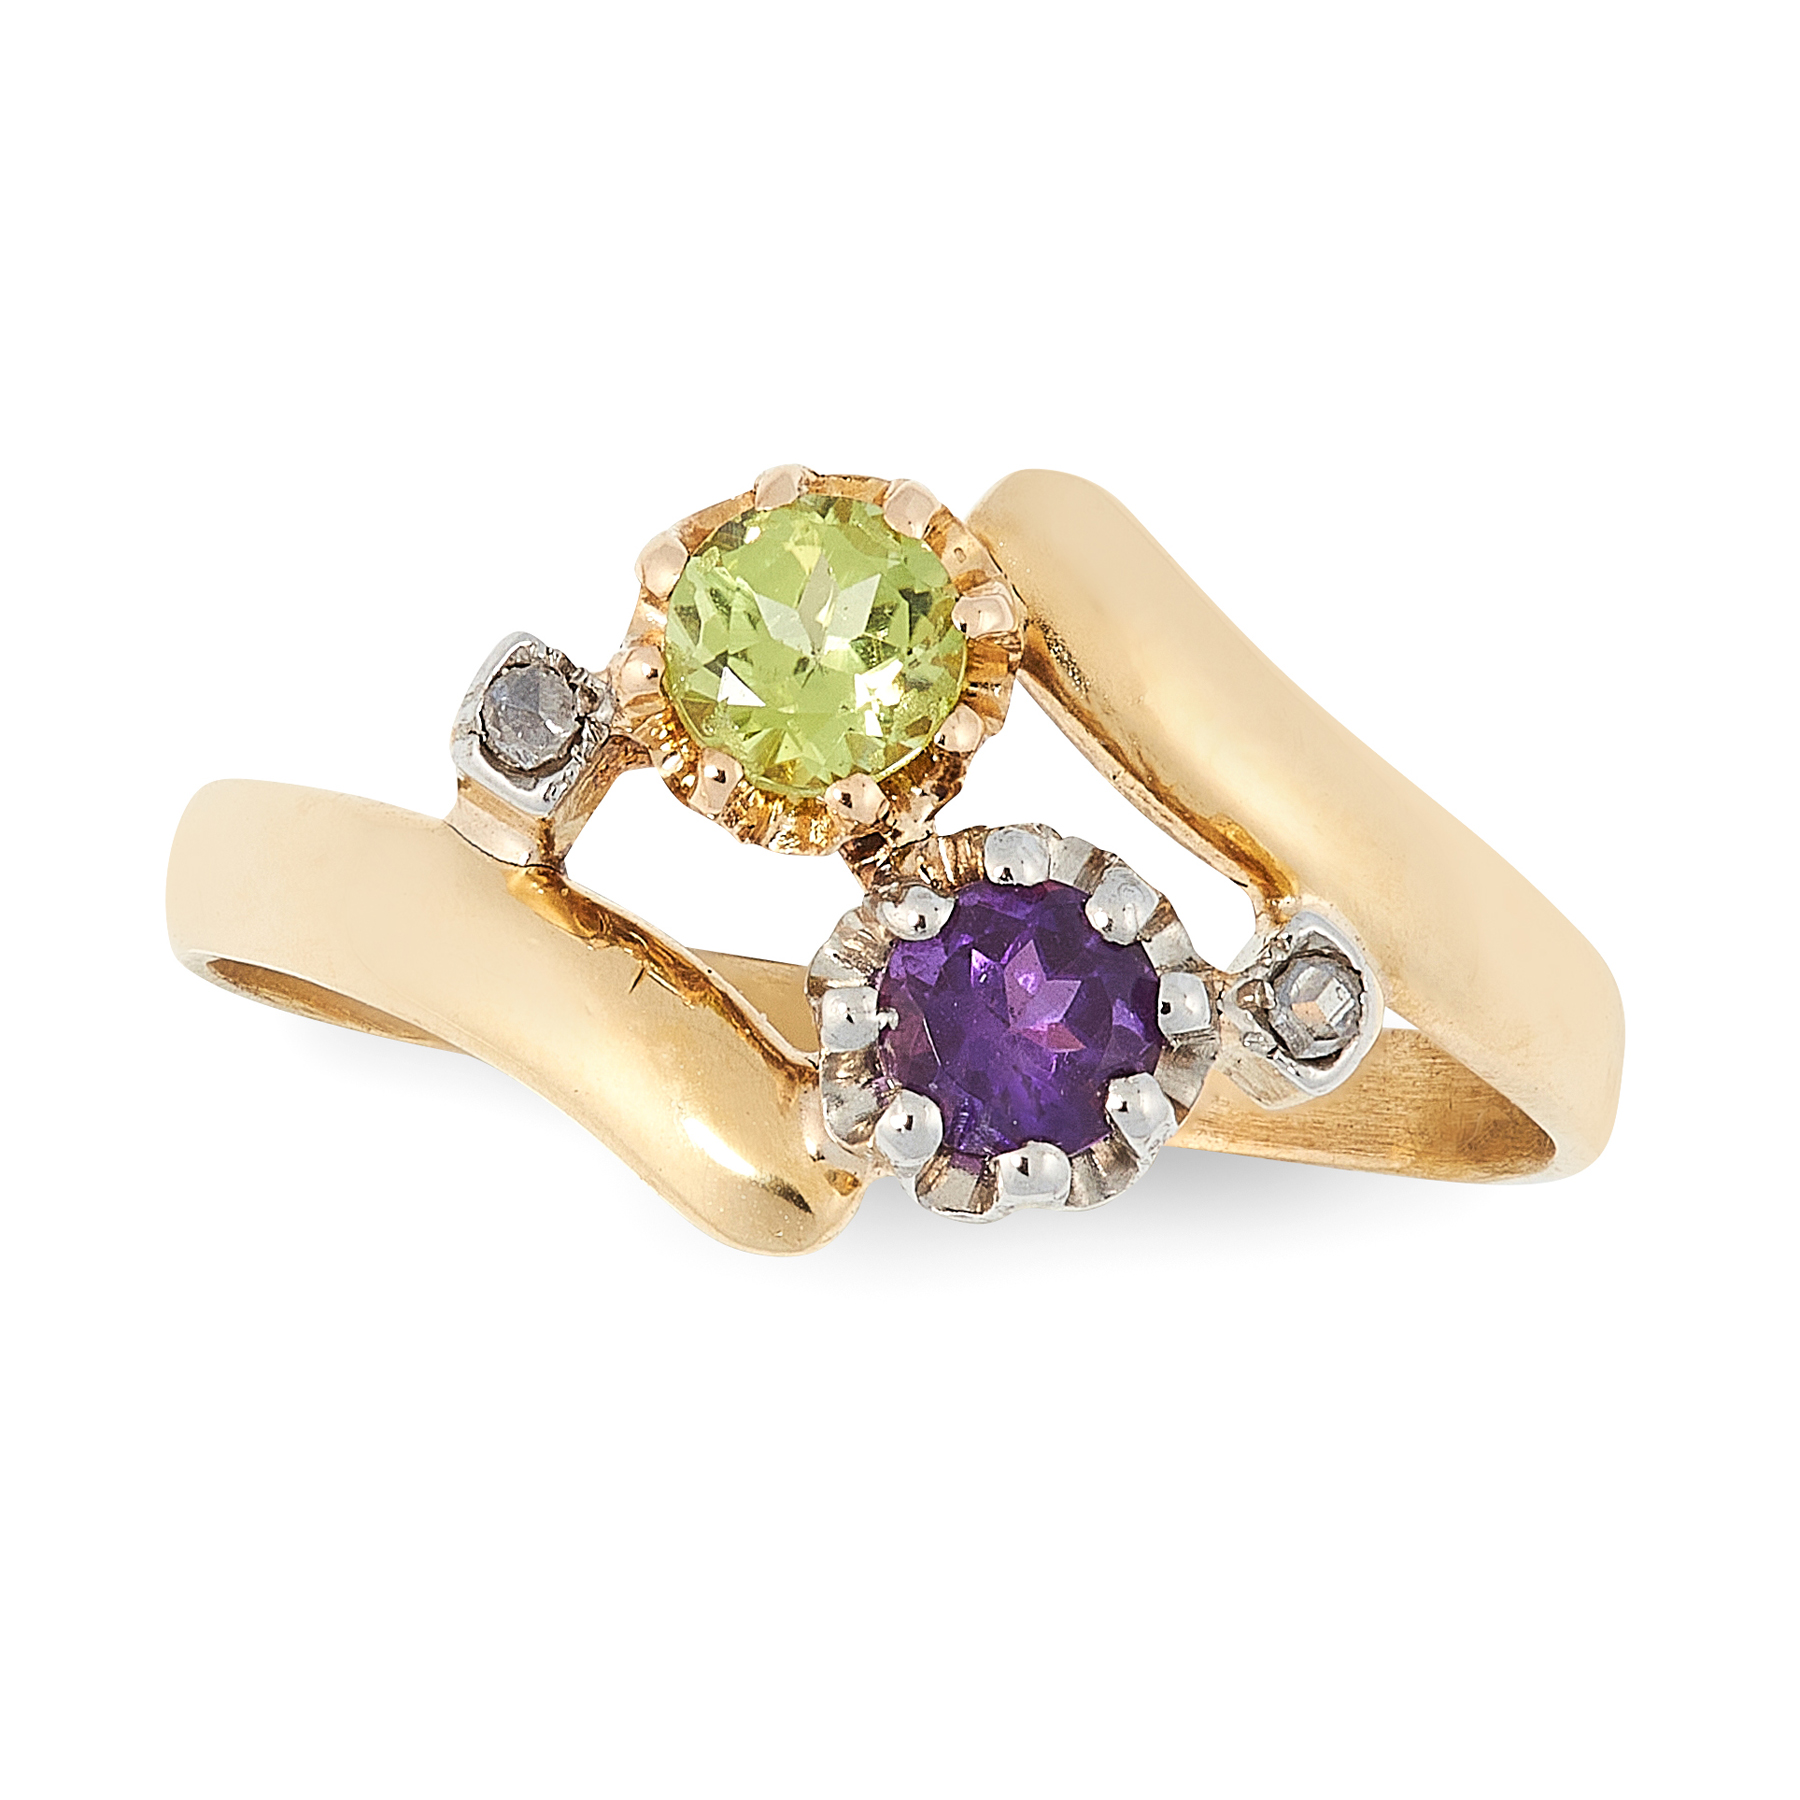 AN ANTIQUE AMETHYST, PERIDOT AND DIAMOND SUFFRAGETTE RING in 18ct yellow gold, of crossover